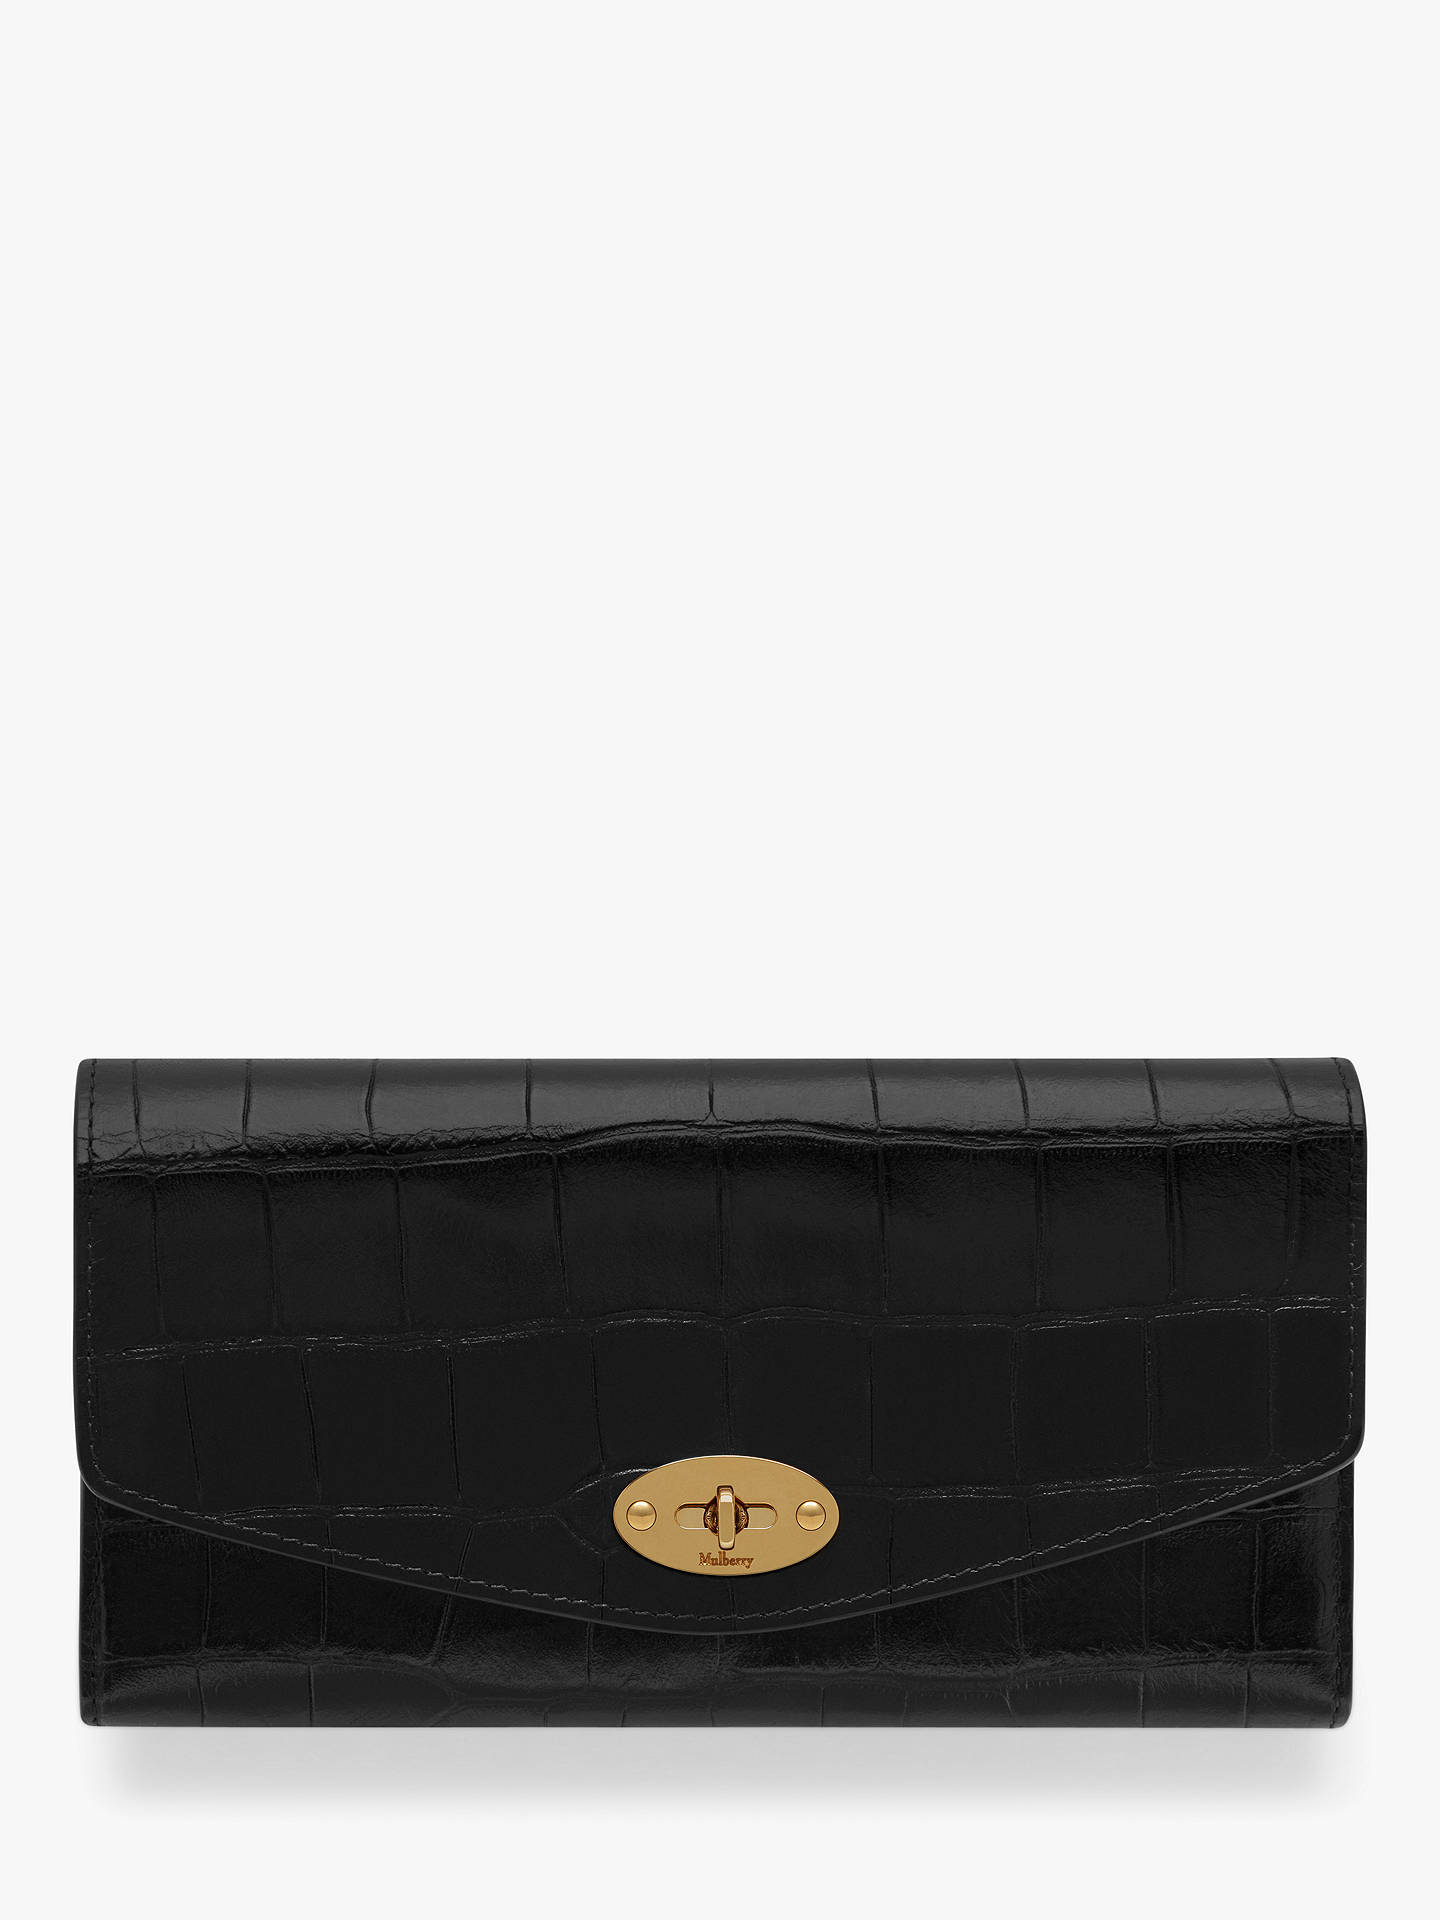 24f432658b Buy Mulberry Darley Croc Embossed Leather Wallet, Black Online at  johnlewis.com ...